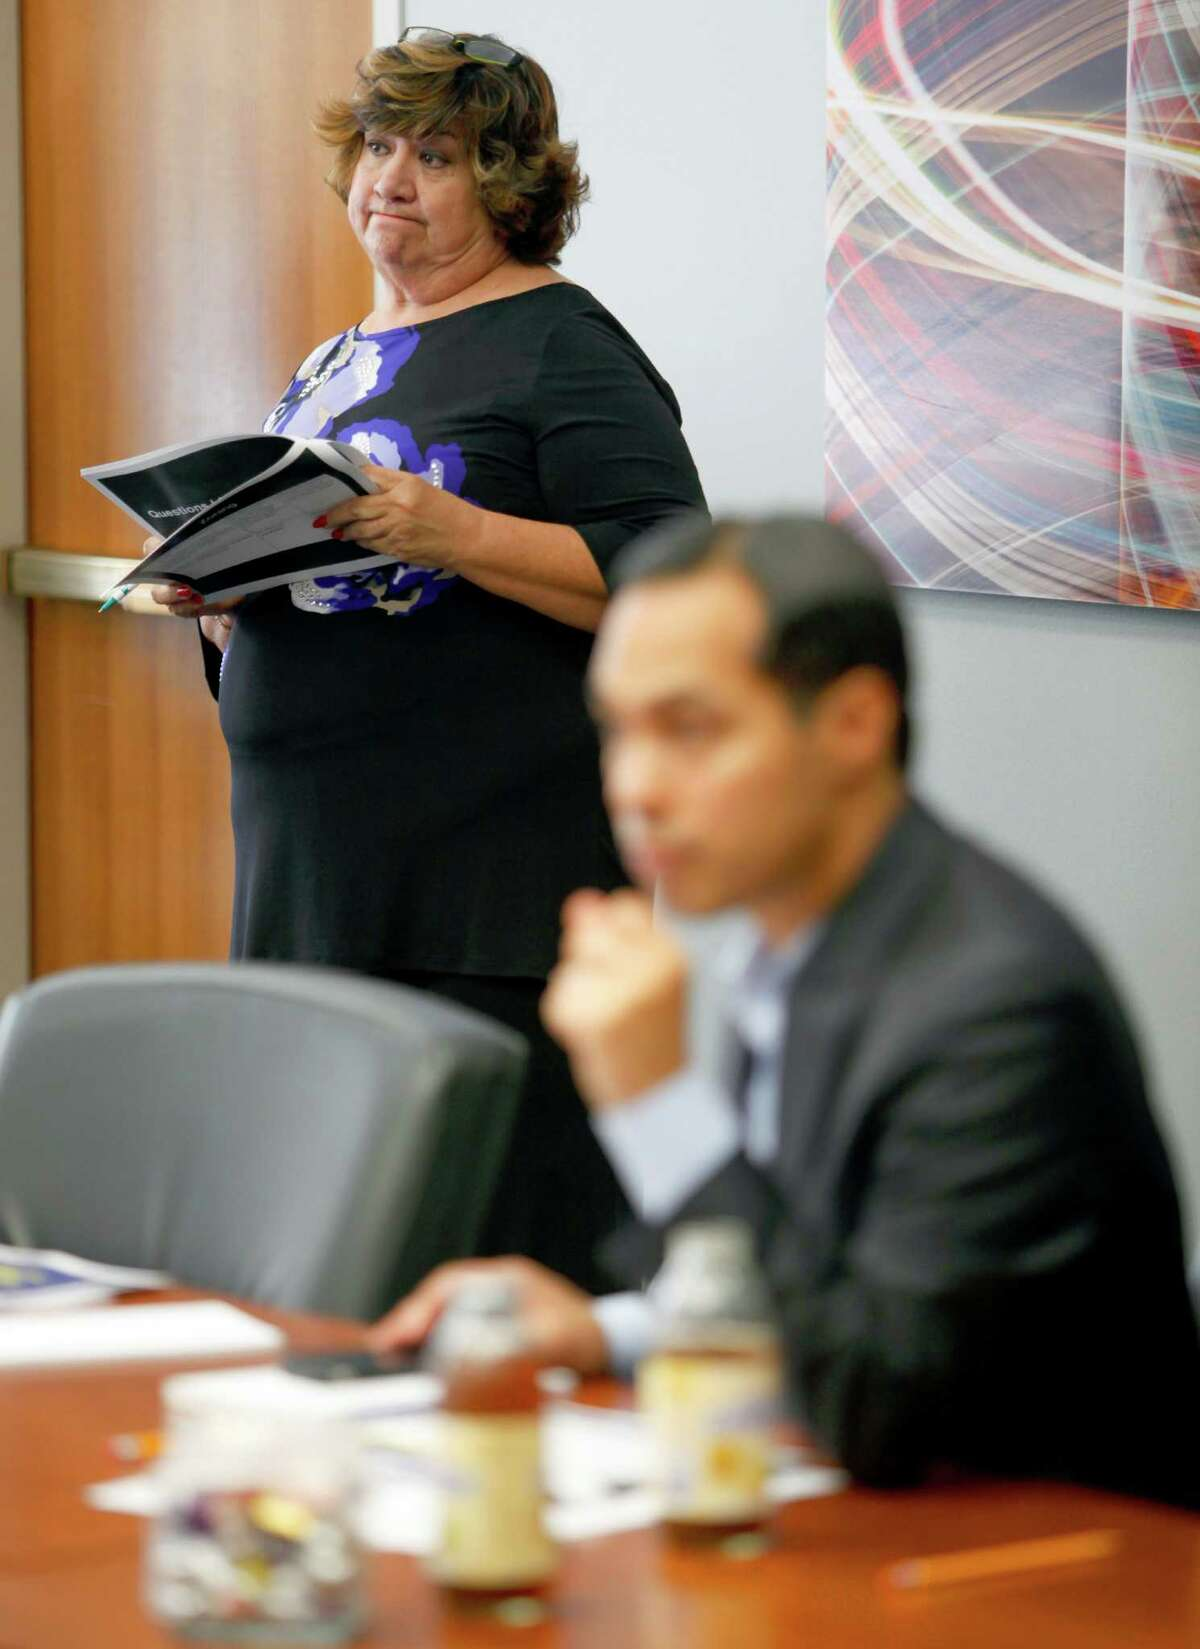 Connie Salinas, president of San Antonio Residential Care Homes organization, listens as city council is presented Wednesday Oct. 31, 2012 during a B Session meeting with more information about a proposed ordinance that would allow the city to regulate an estimated 200 boarding homes in San Antonio.